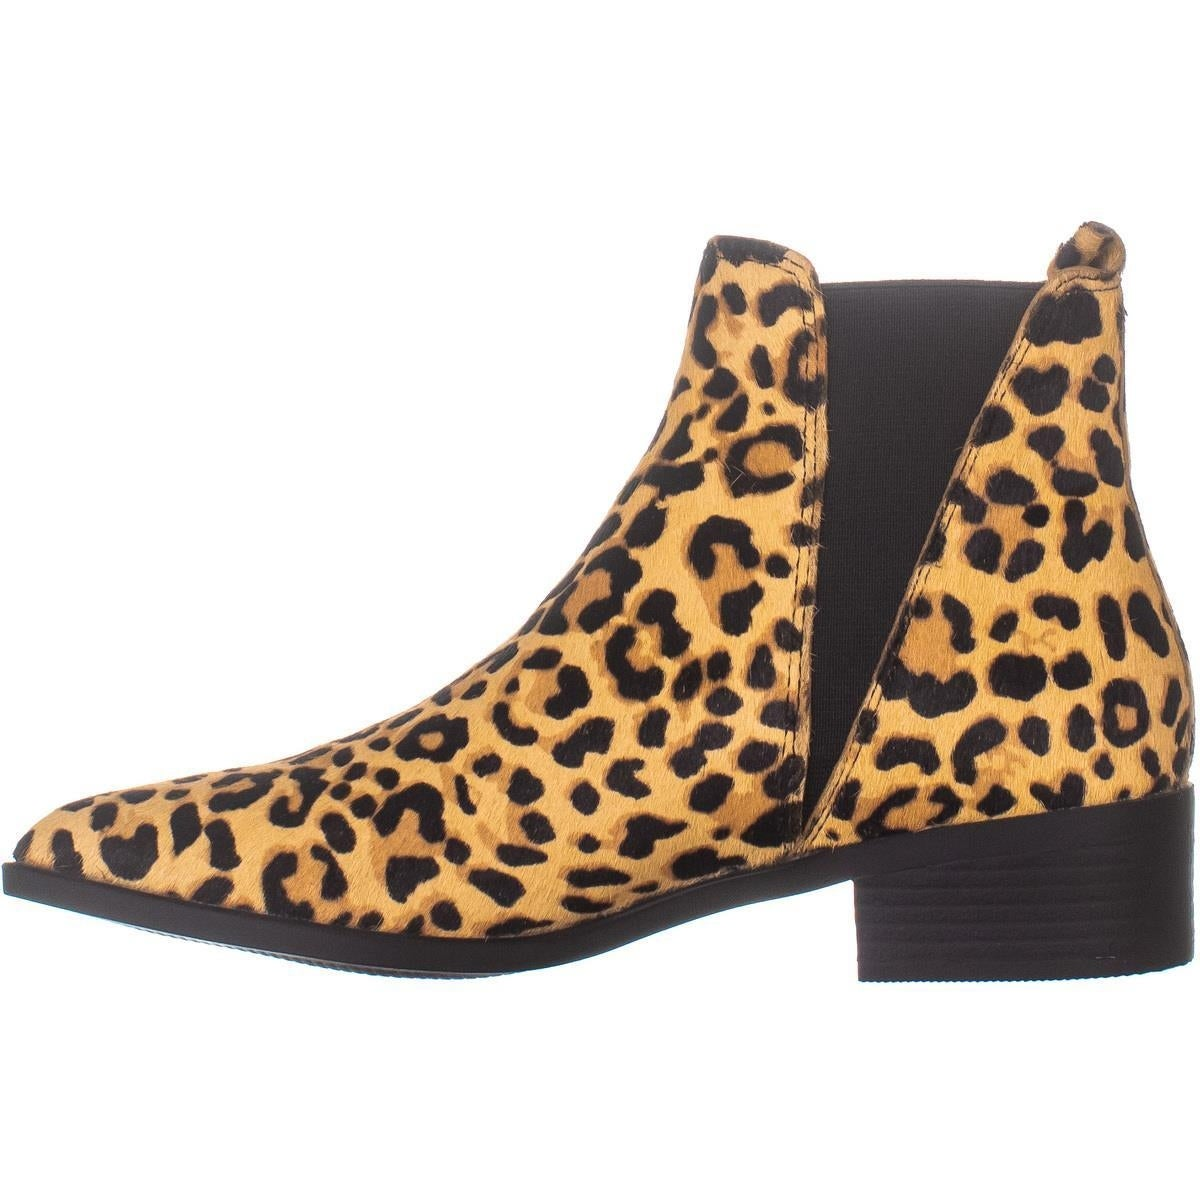 ee2f36e07822 Shop Steve Madden Jerry Pointed Toe Ankle Boot, Leopard - 7 US - Free  Shipping Today - Overstock - 28082754